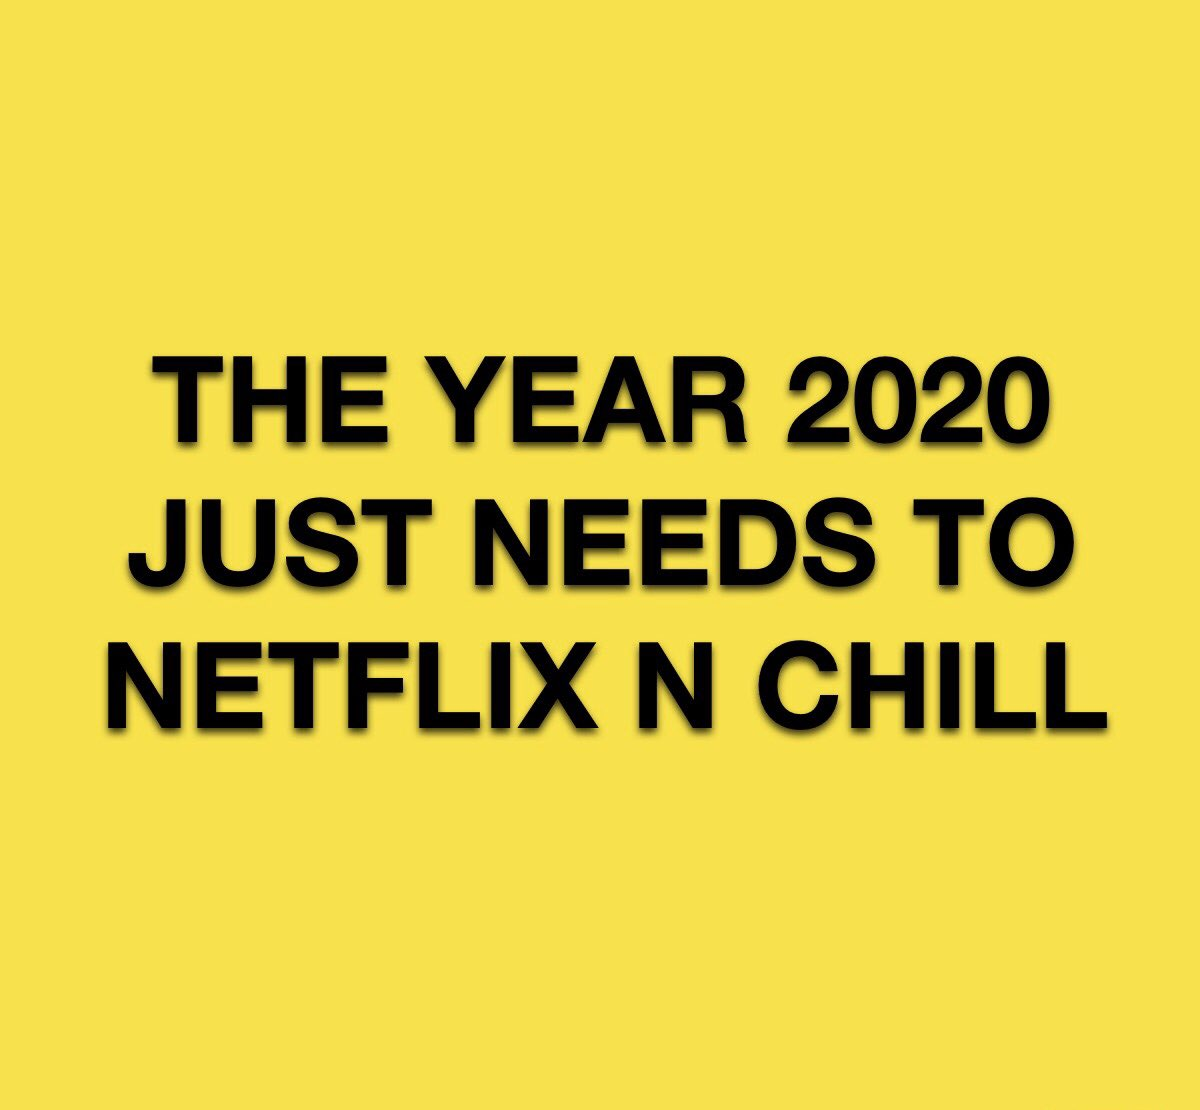 Is this too much to ask for? #netflixmemes #netflix #memes #netflixandchill #netflixmovies #meme #netflixmemepic.twitter.com/3uR8oNcCf7